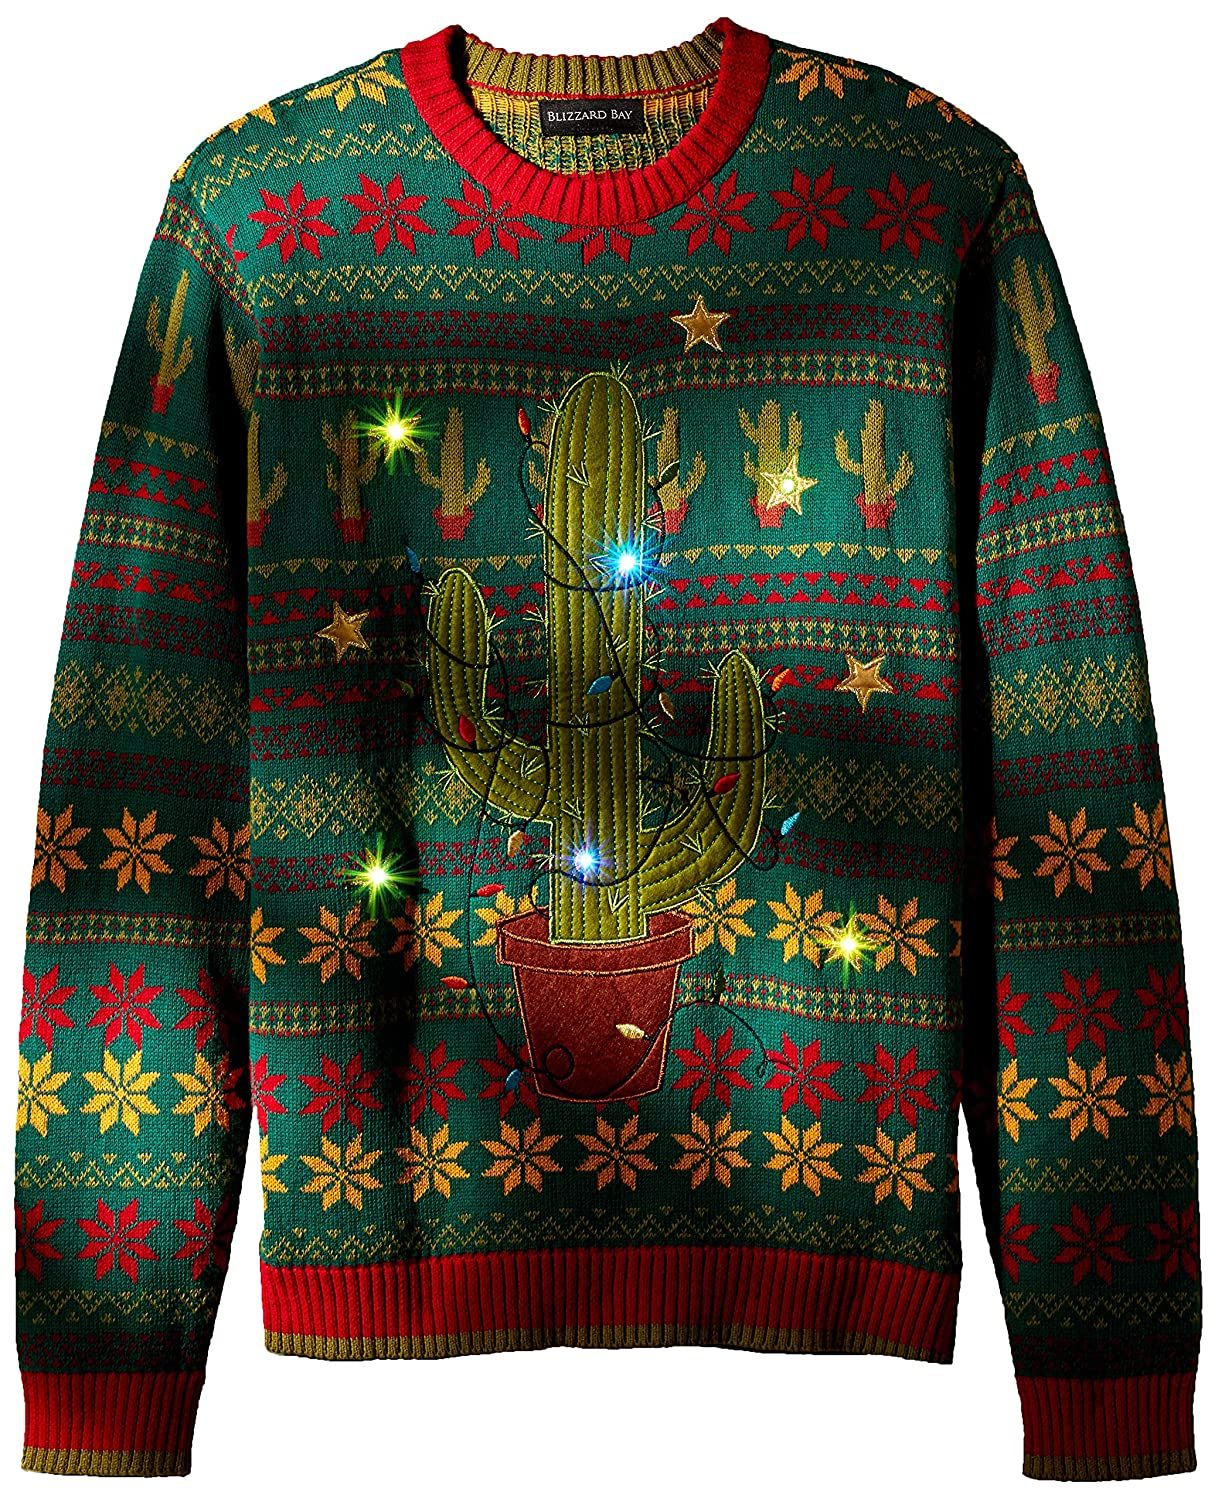 X-Large Blizzard Bay Mens Ugly Christmas Sweater Light UP Green//Red